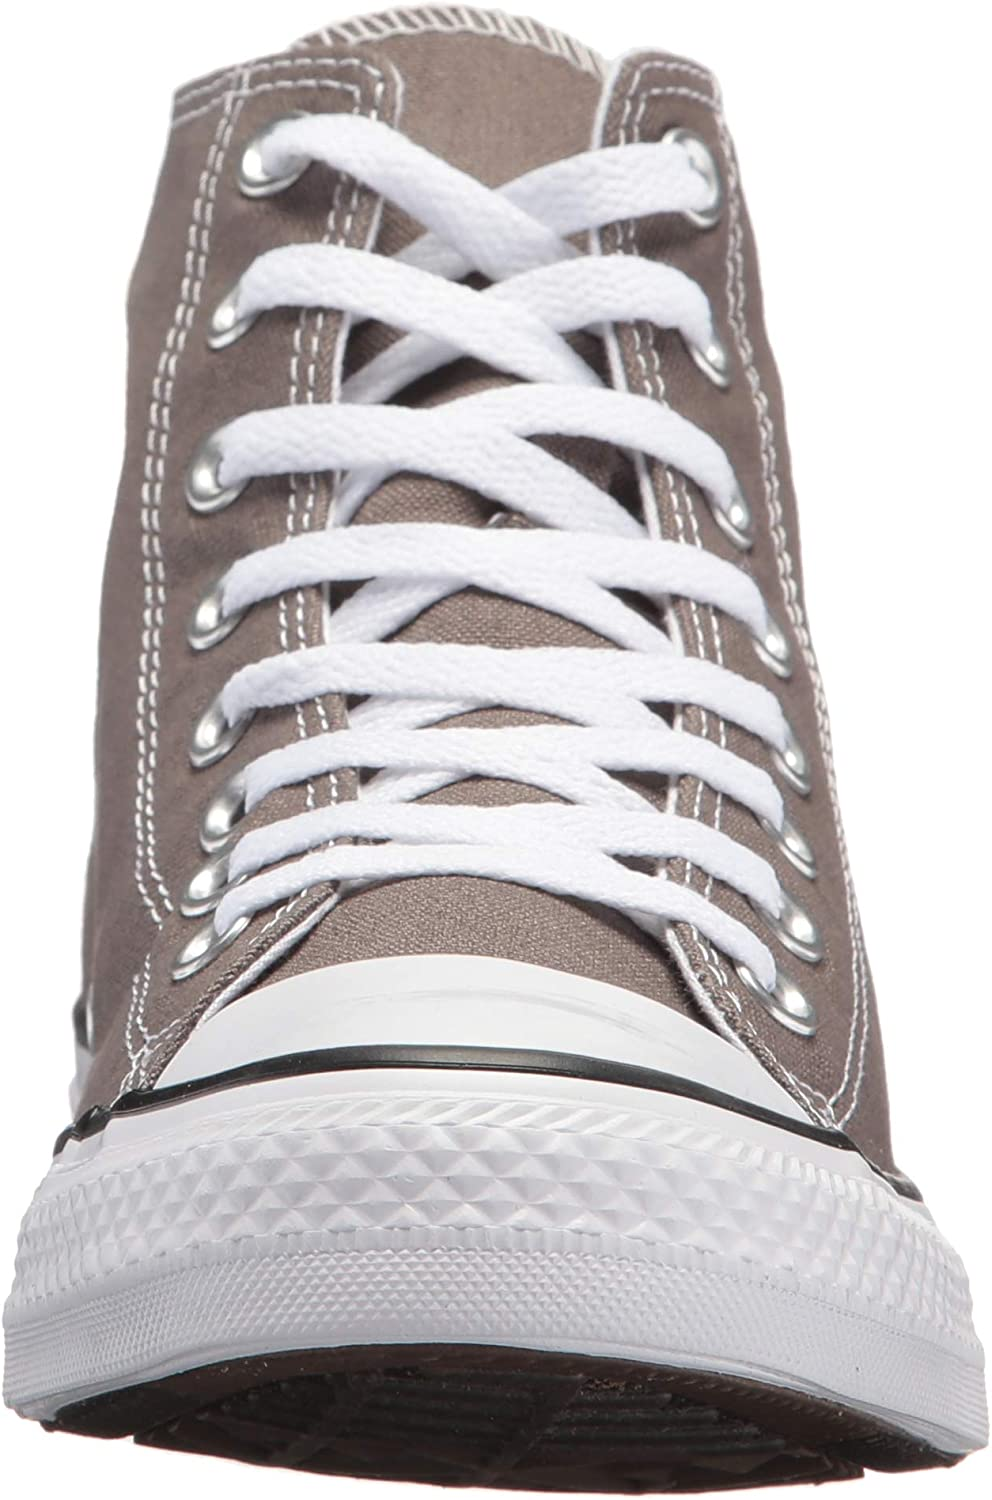 Converse Optical White, Sneakers Basses Mixte Charbon